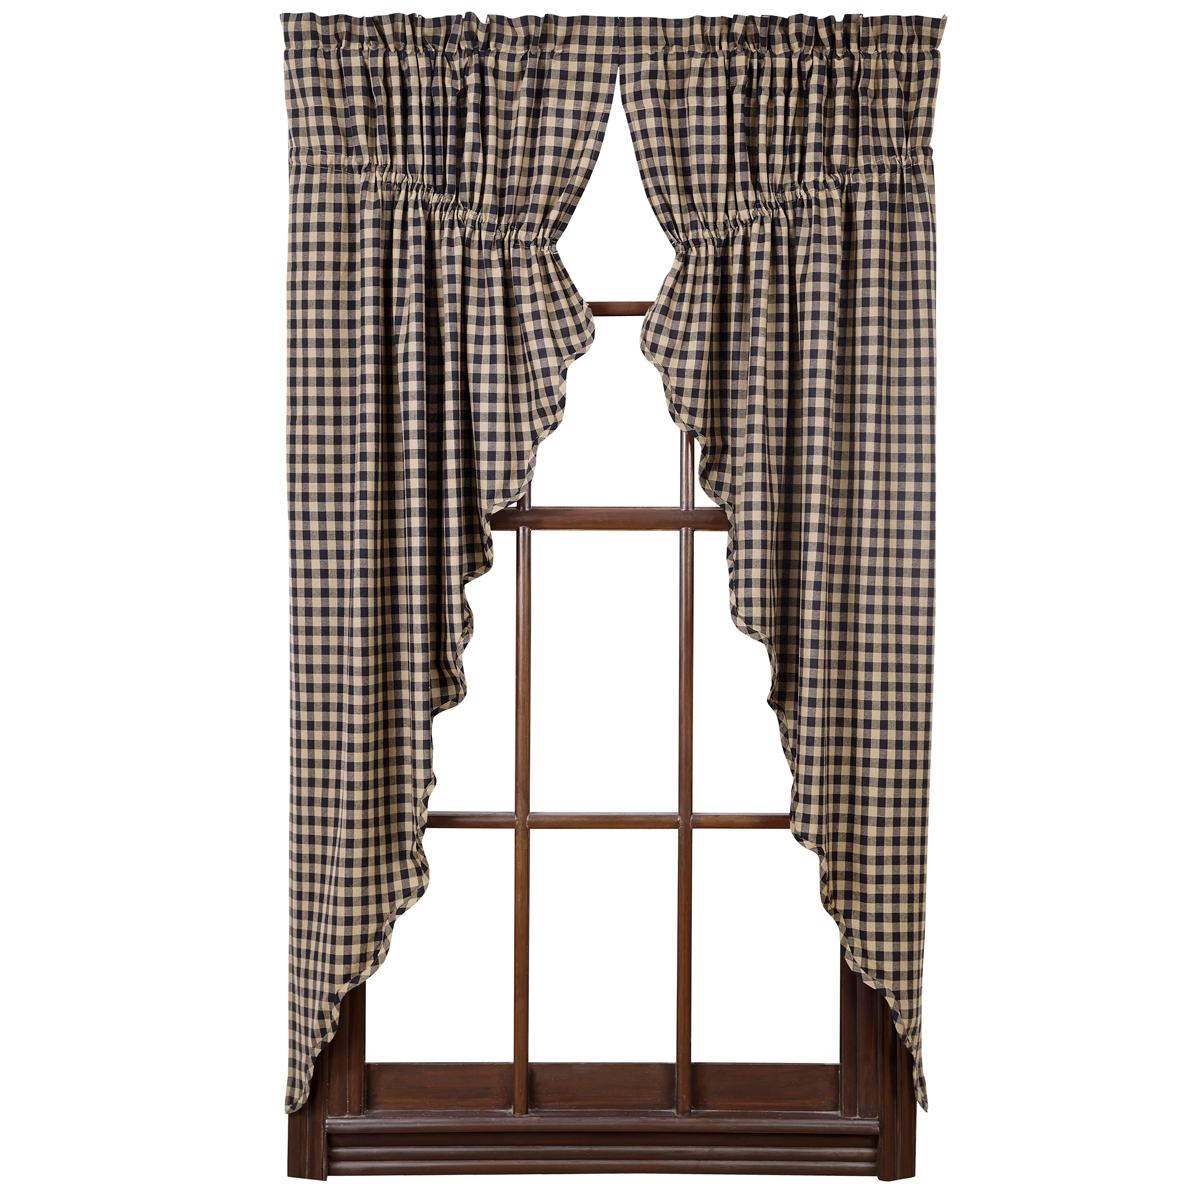 BLACK CHECK Scalloped Praire Curtains - Set of 2 - Raven and Khaki  - VHC Brands